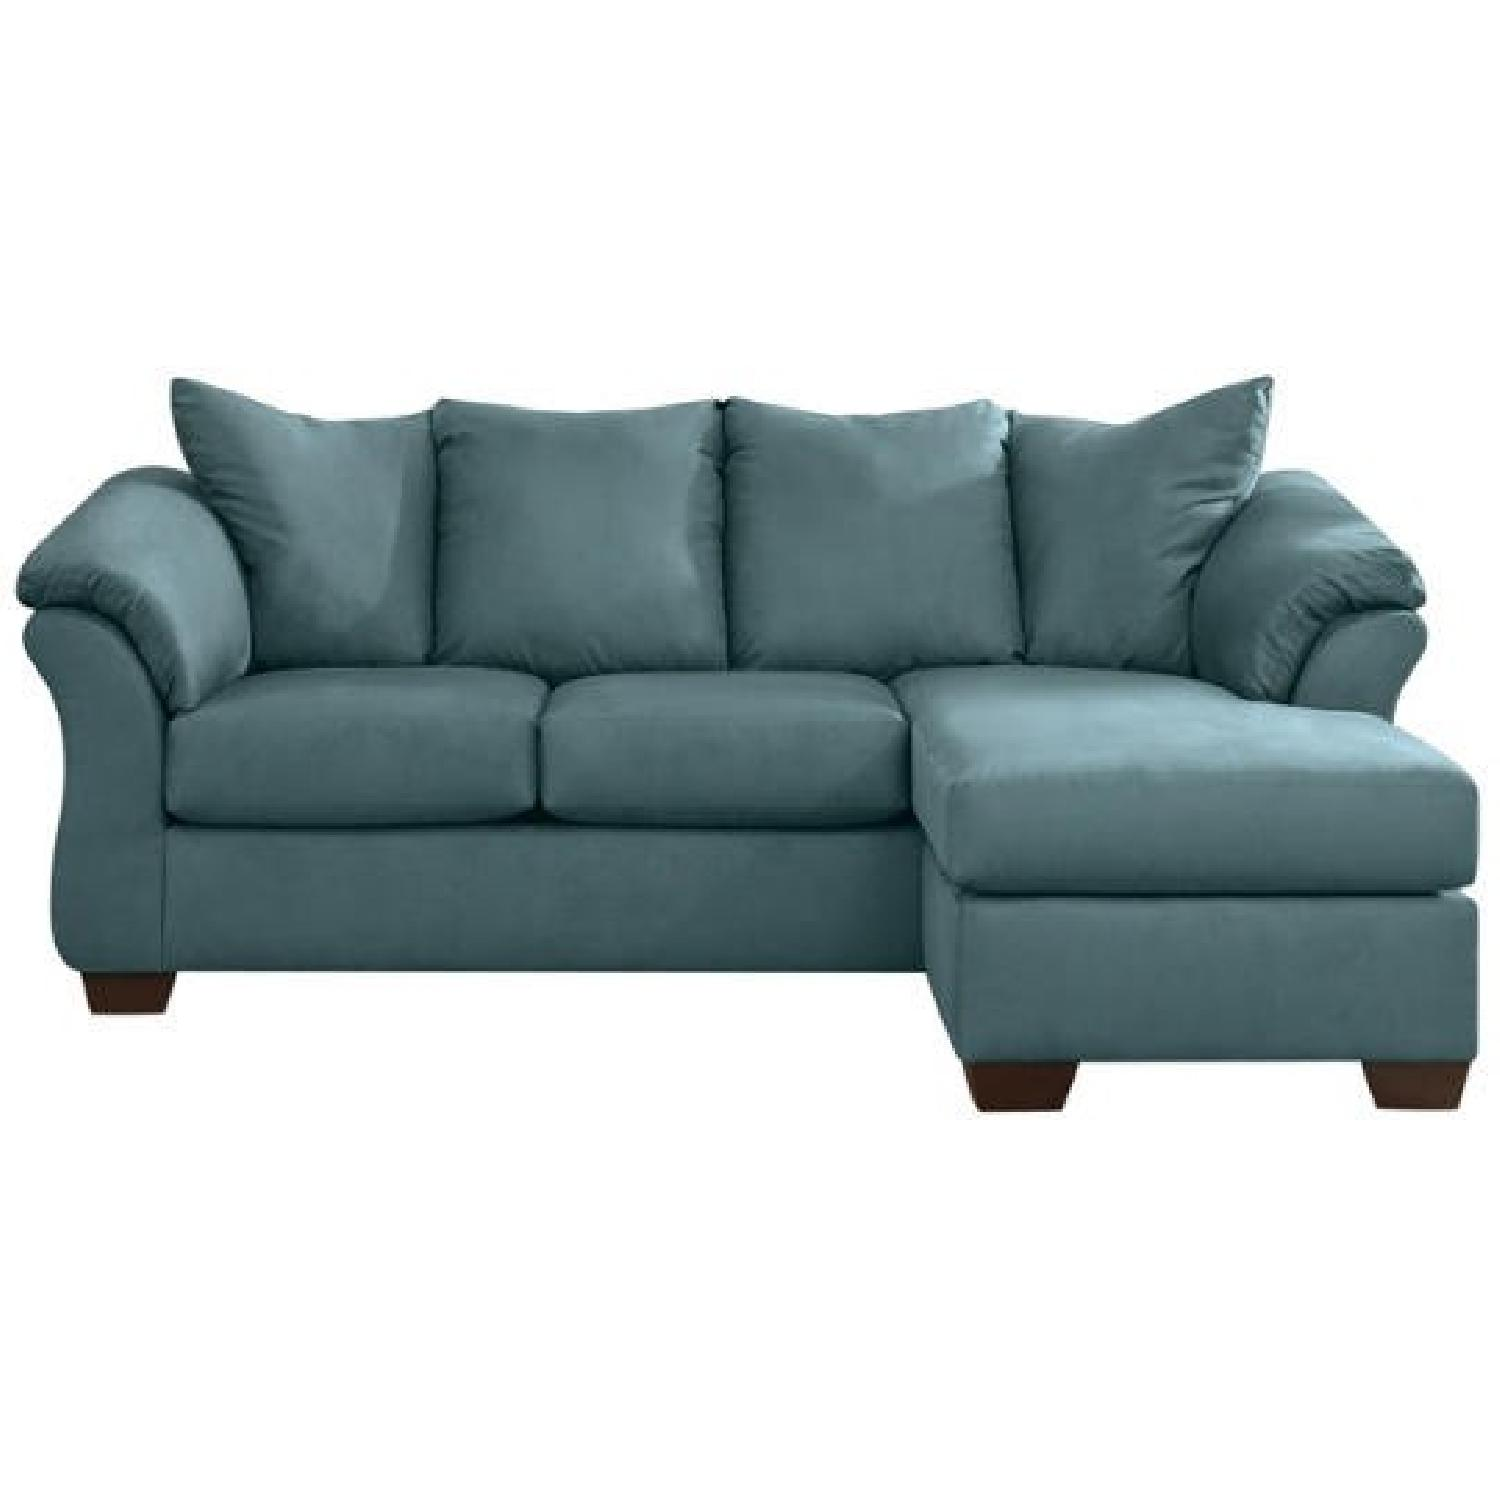 Ashley s Sectional Sofa w Chaise in Sky Blue AptDeco